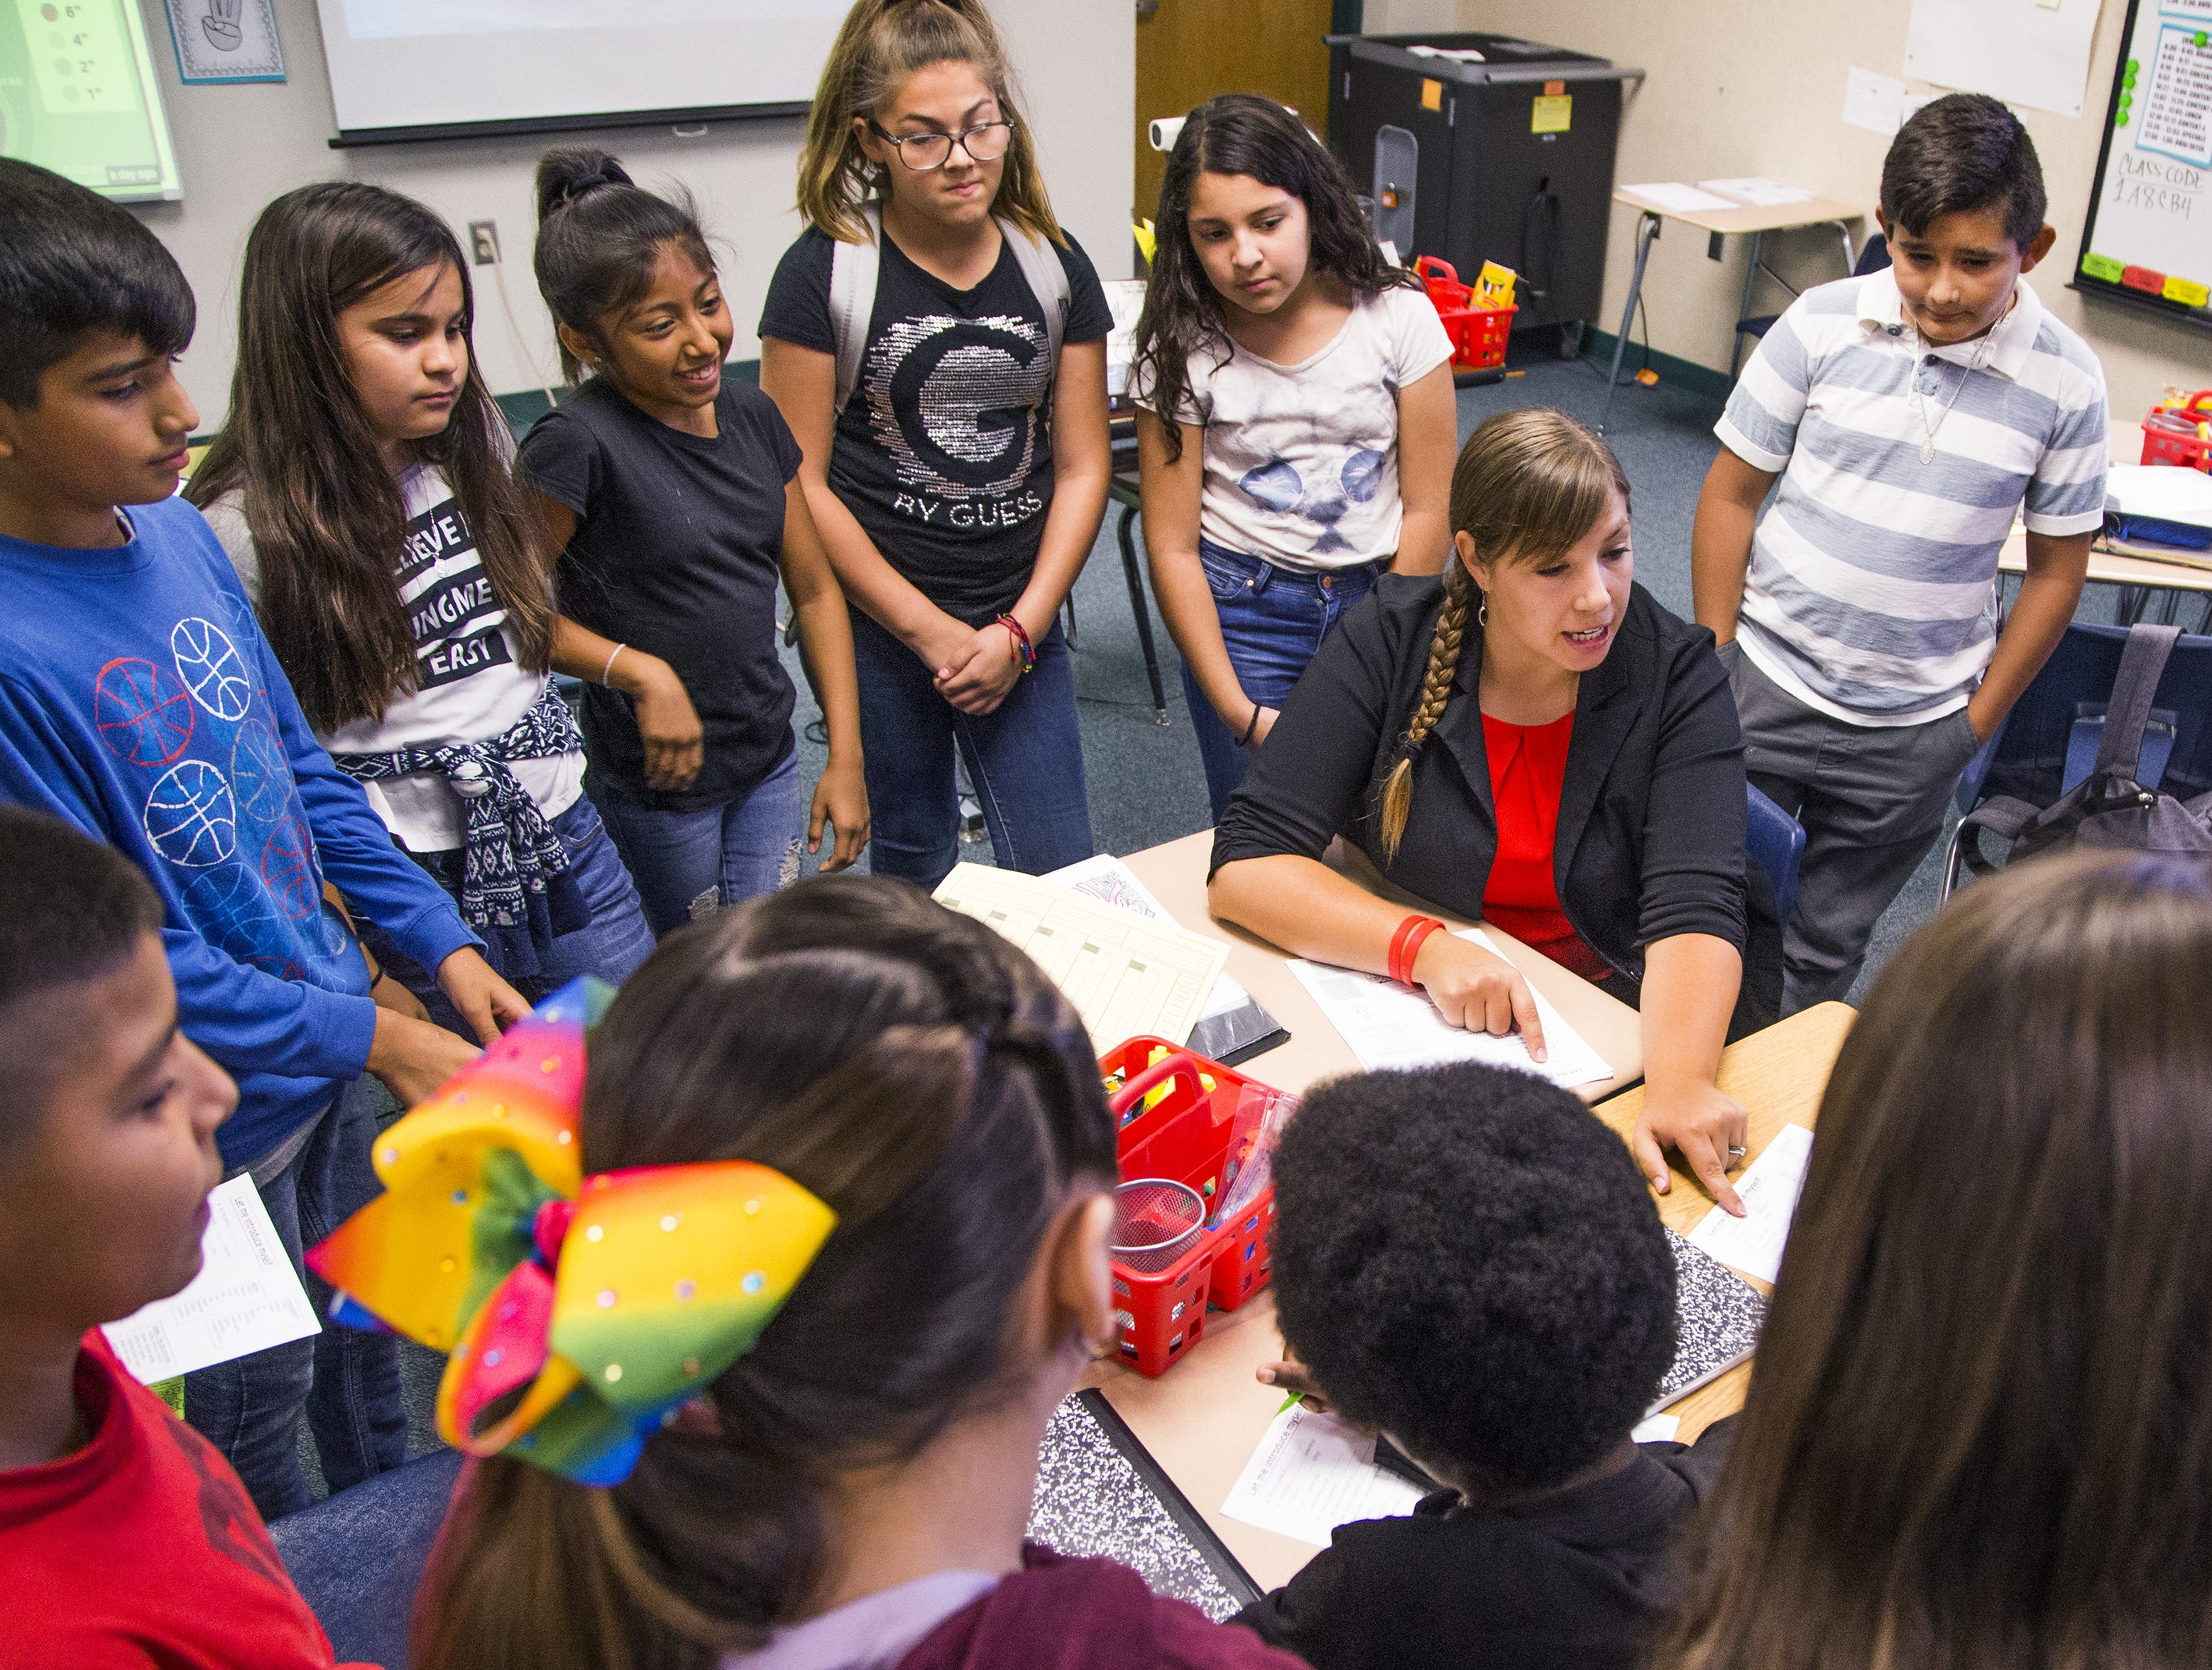 Rebecca Garelli , sitting, helps her 6th grade class at Sevilla West Elementary School in Phoenix, at 10:45 am, Monday, September 17, 2018. Garelli has been one of the leaders of the #RedforEd movement, demanding increased funding for education in Arizona.